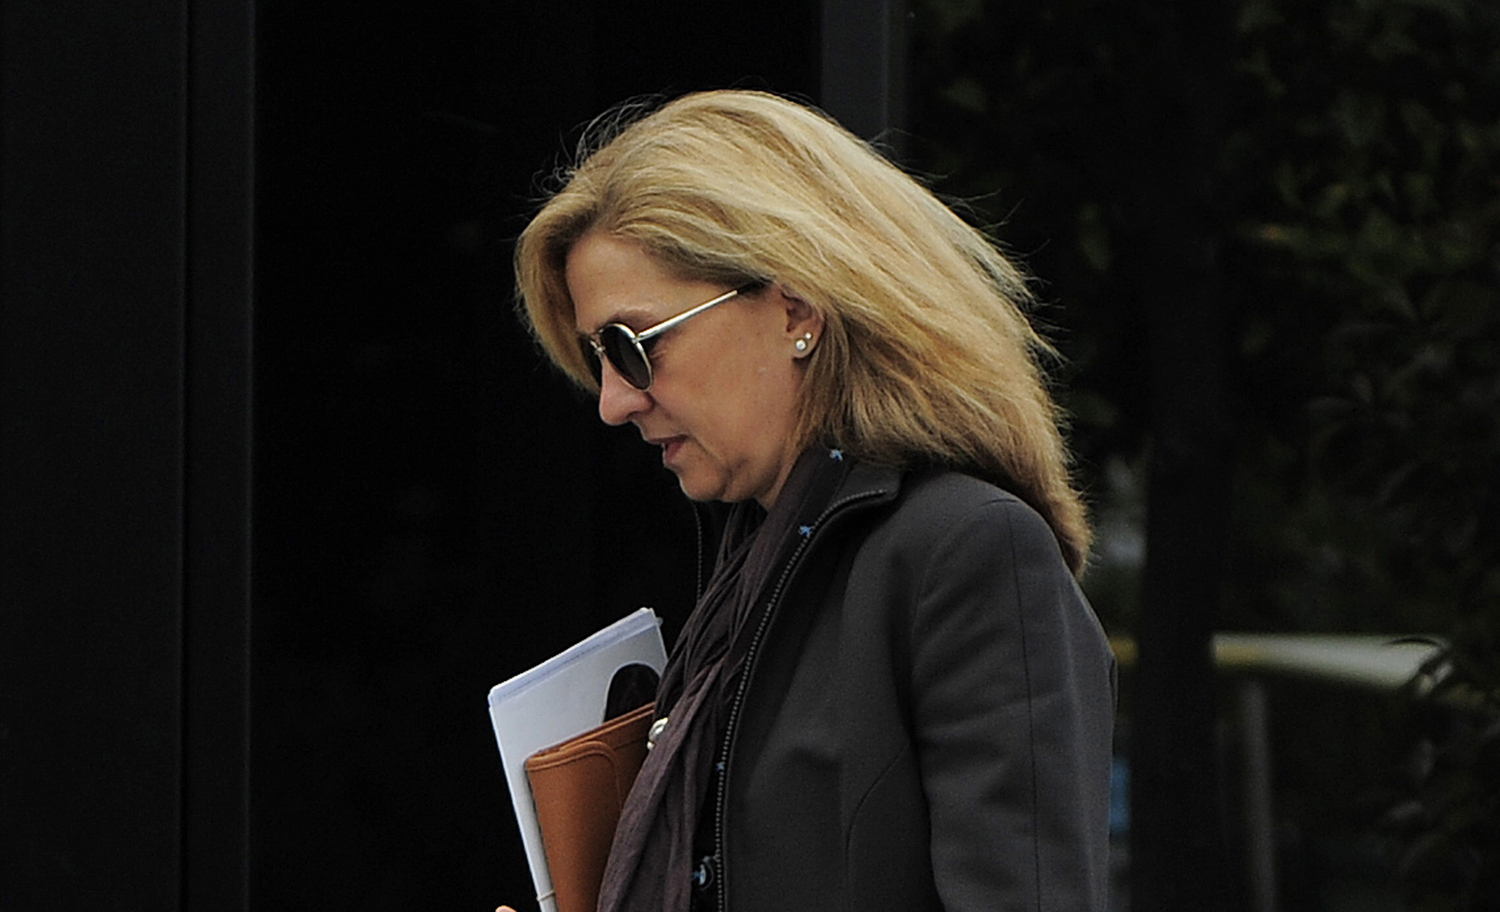 Spain's Princess Cristina walks toward her office in Barcelona on April 5, 2013